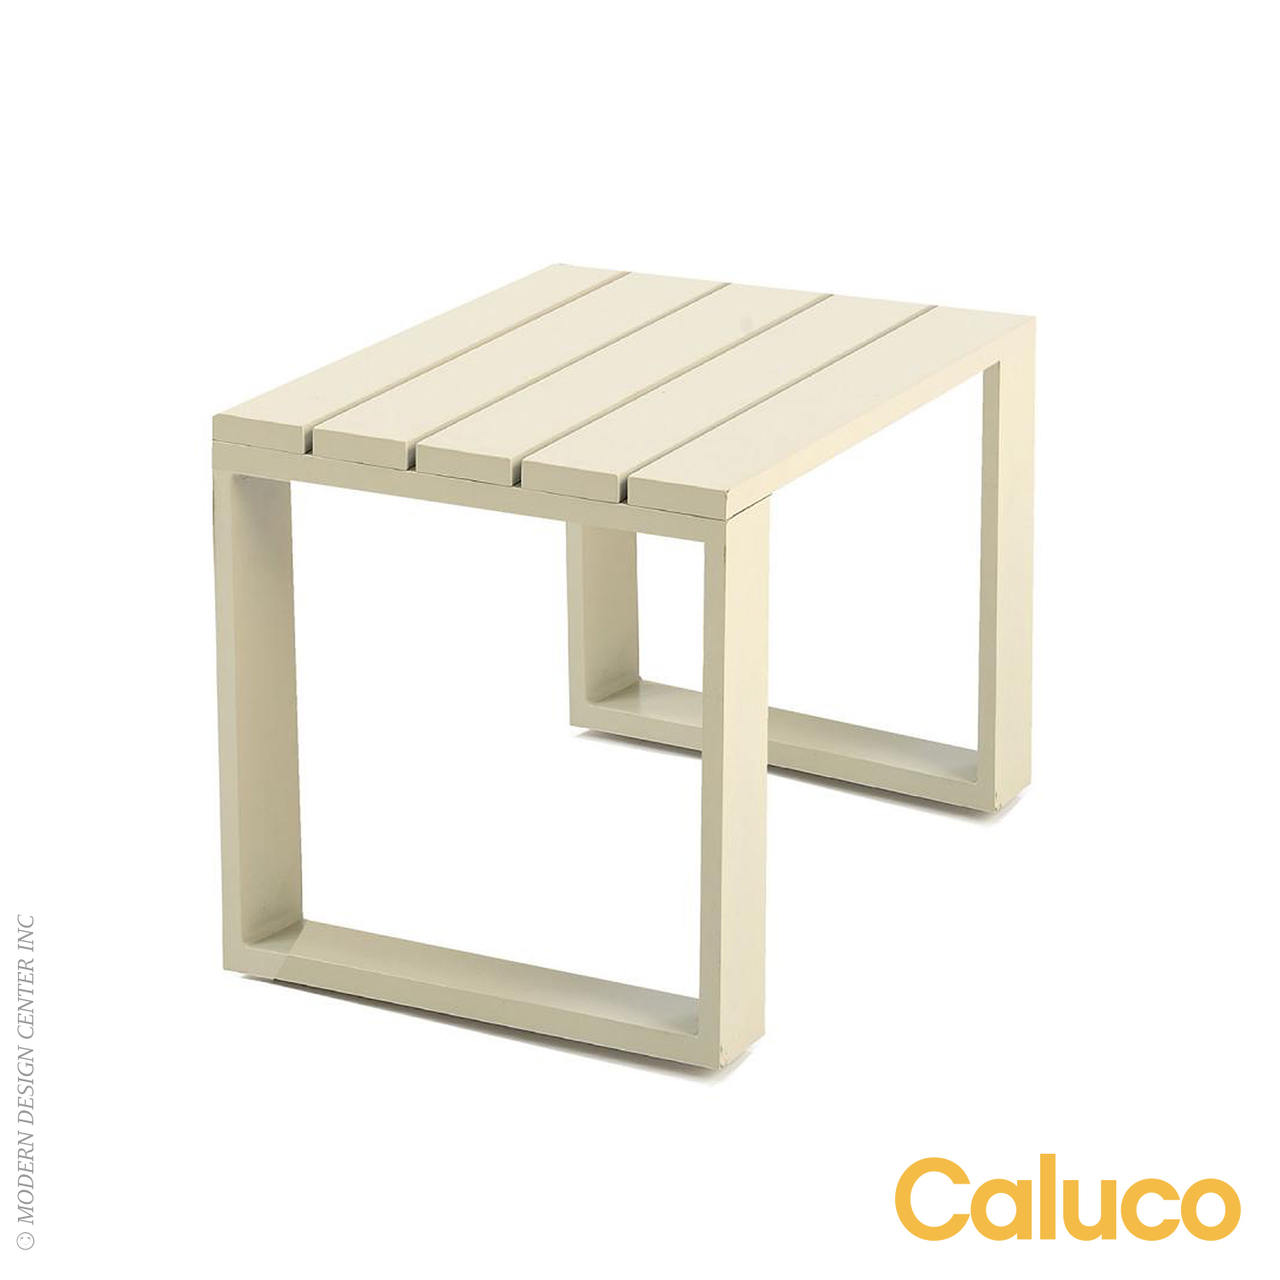 Space end table caluco patio furniture metropolitandecor for Space saving hanging table for balcony